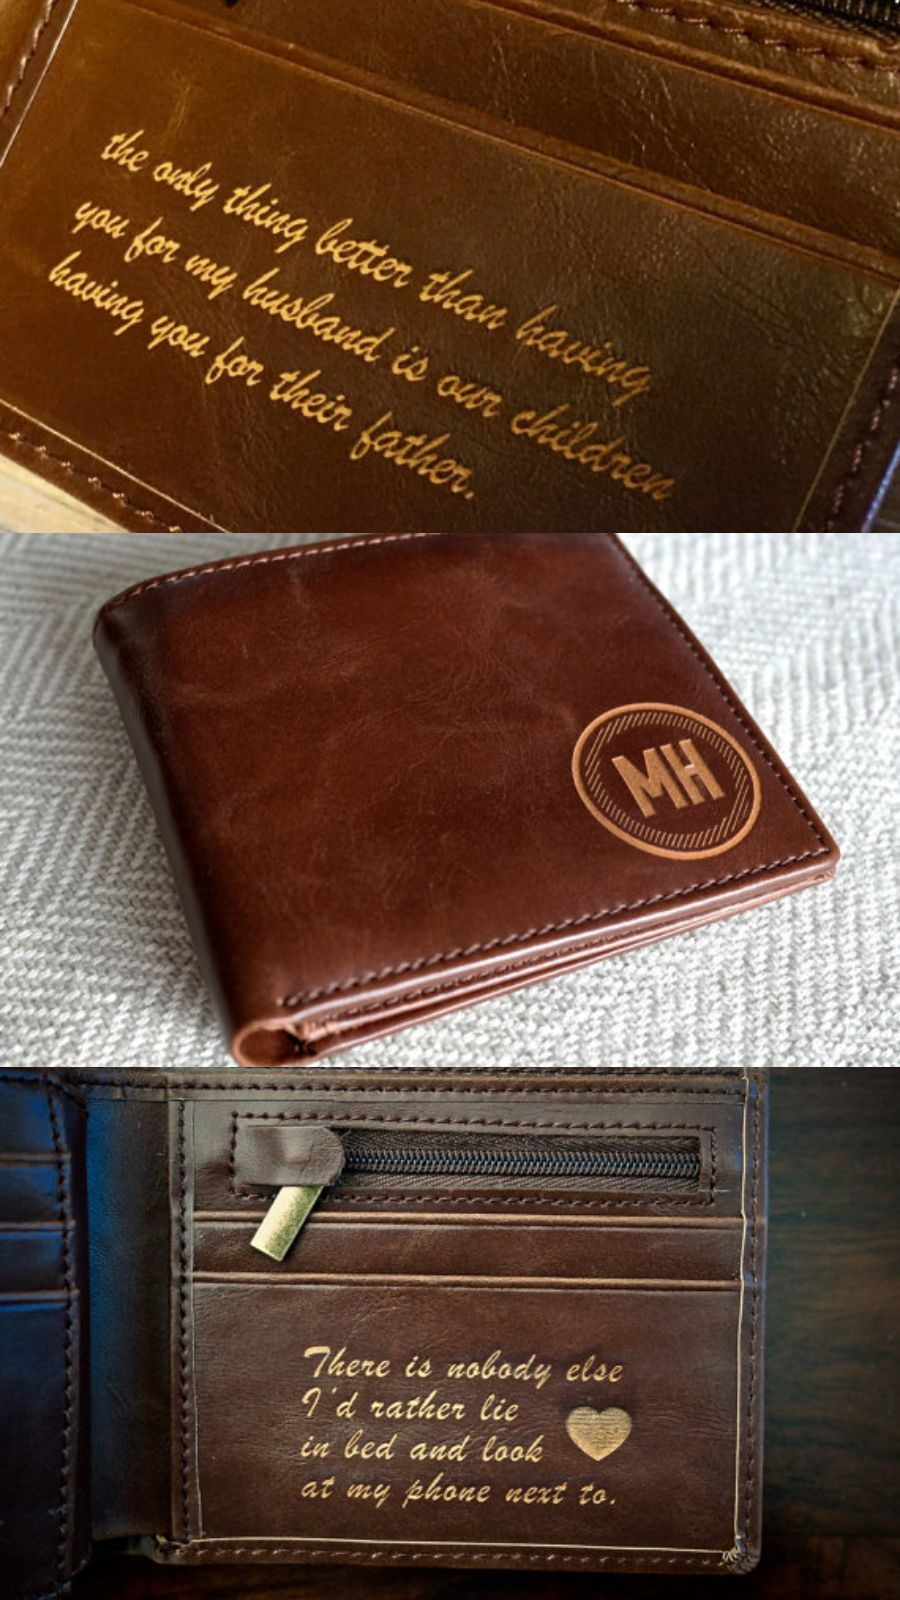 e2bcb6d9a401 Valentines Day Gift for Him - Mens Leather Wallet - Personalized  Anniversary Gift  giftforhim  valentine  ad